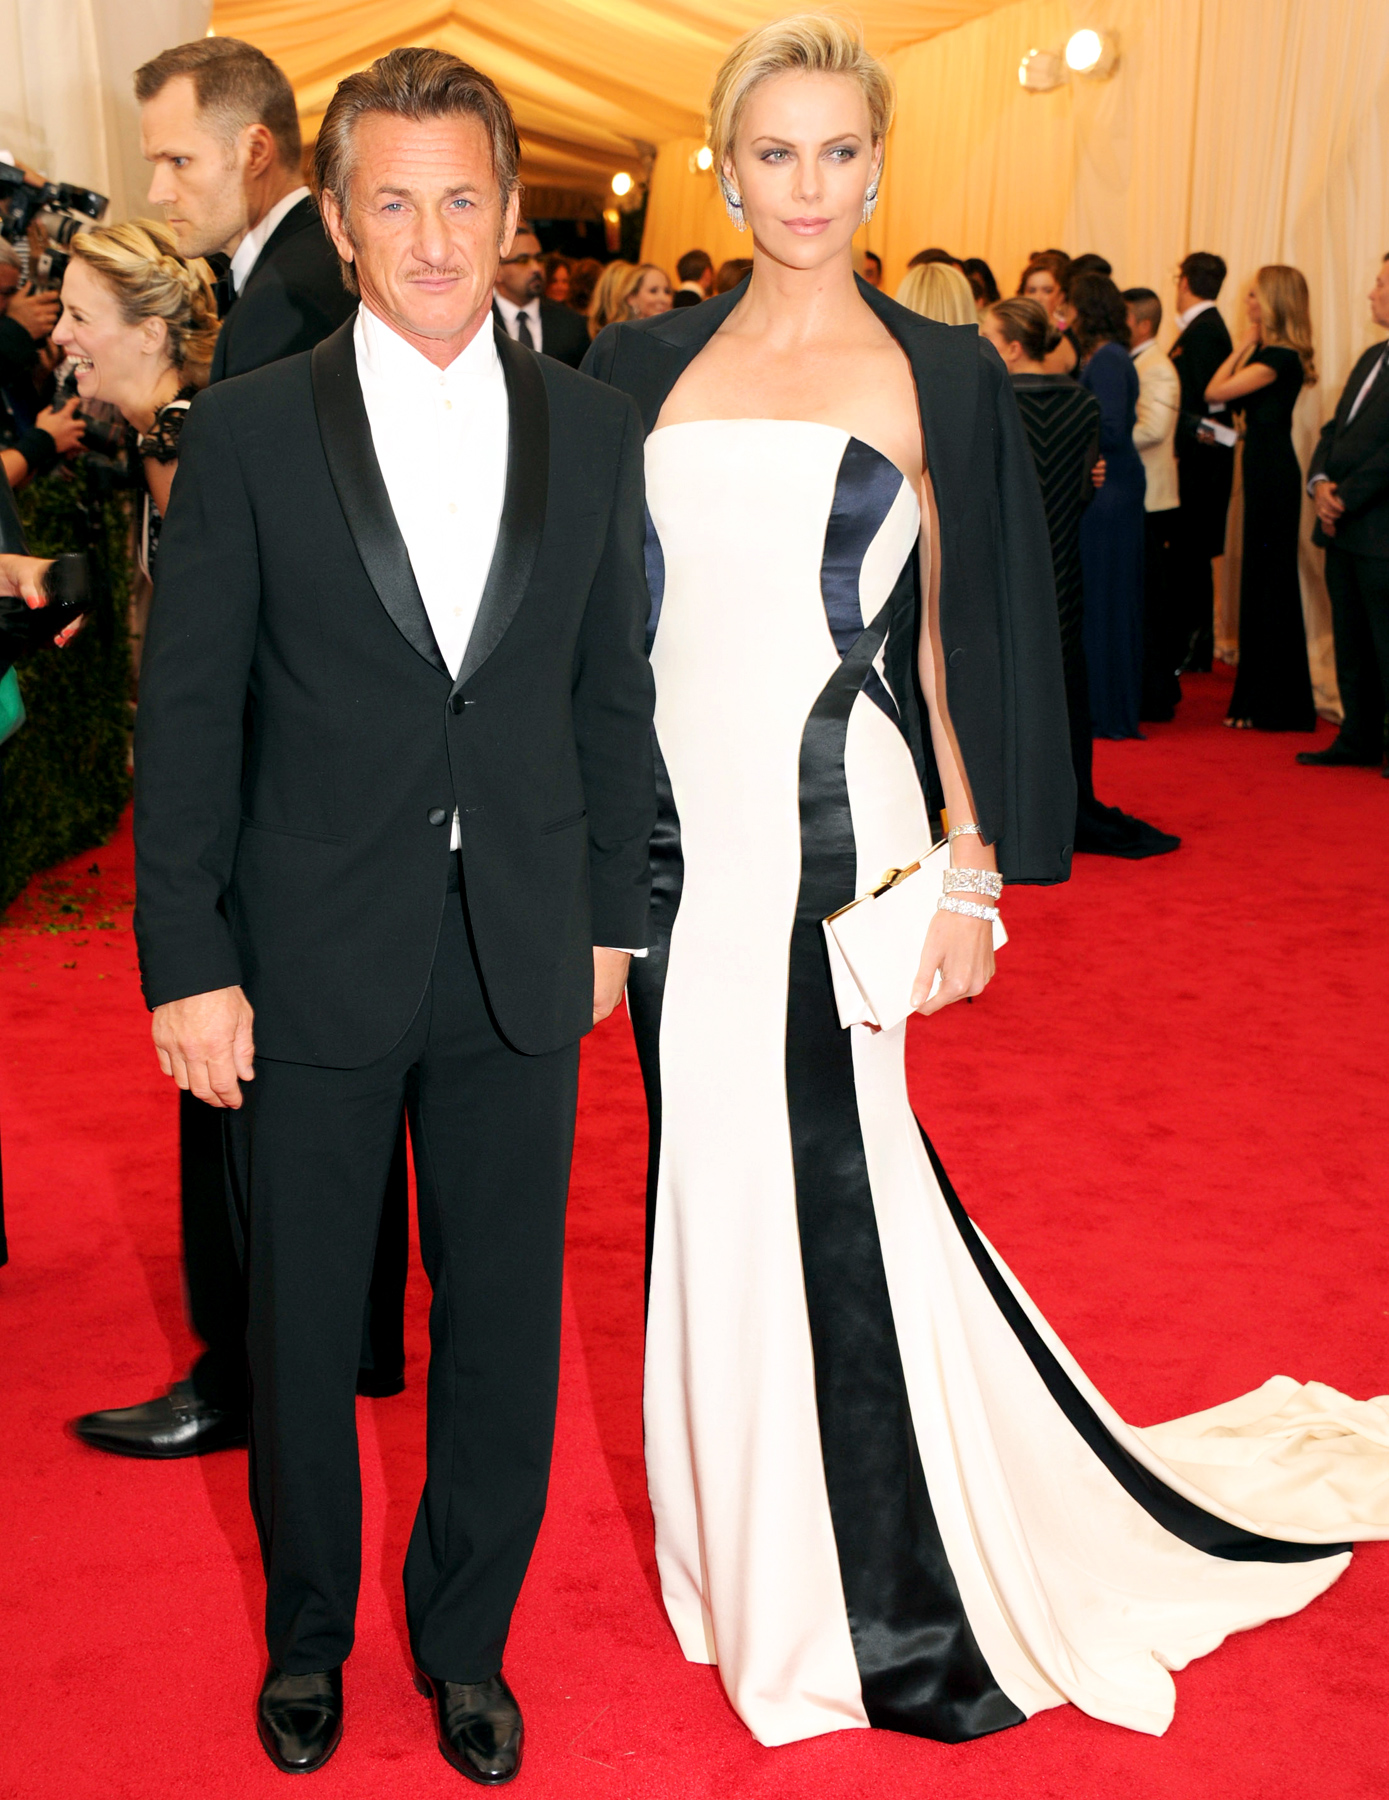 Sean Penn with Charlize Theron red carpet